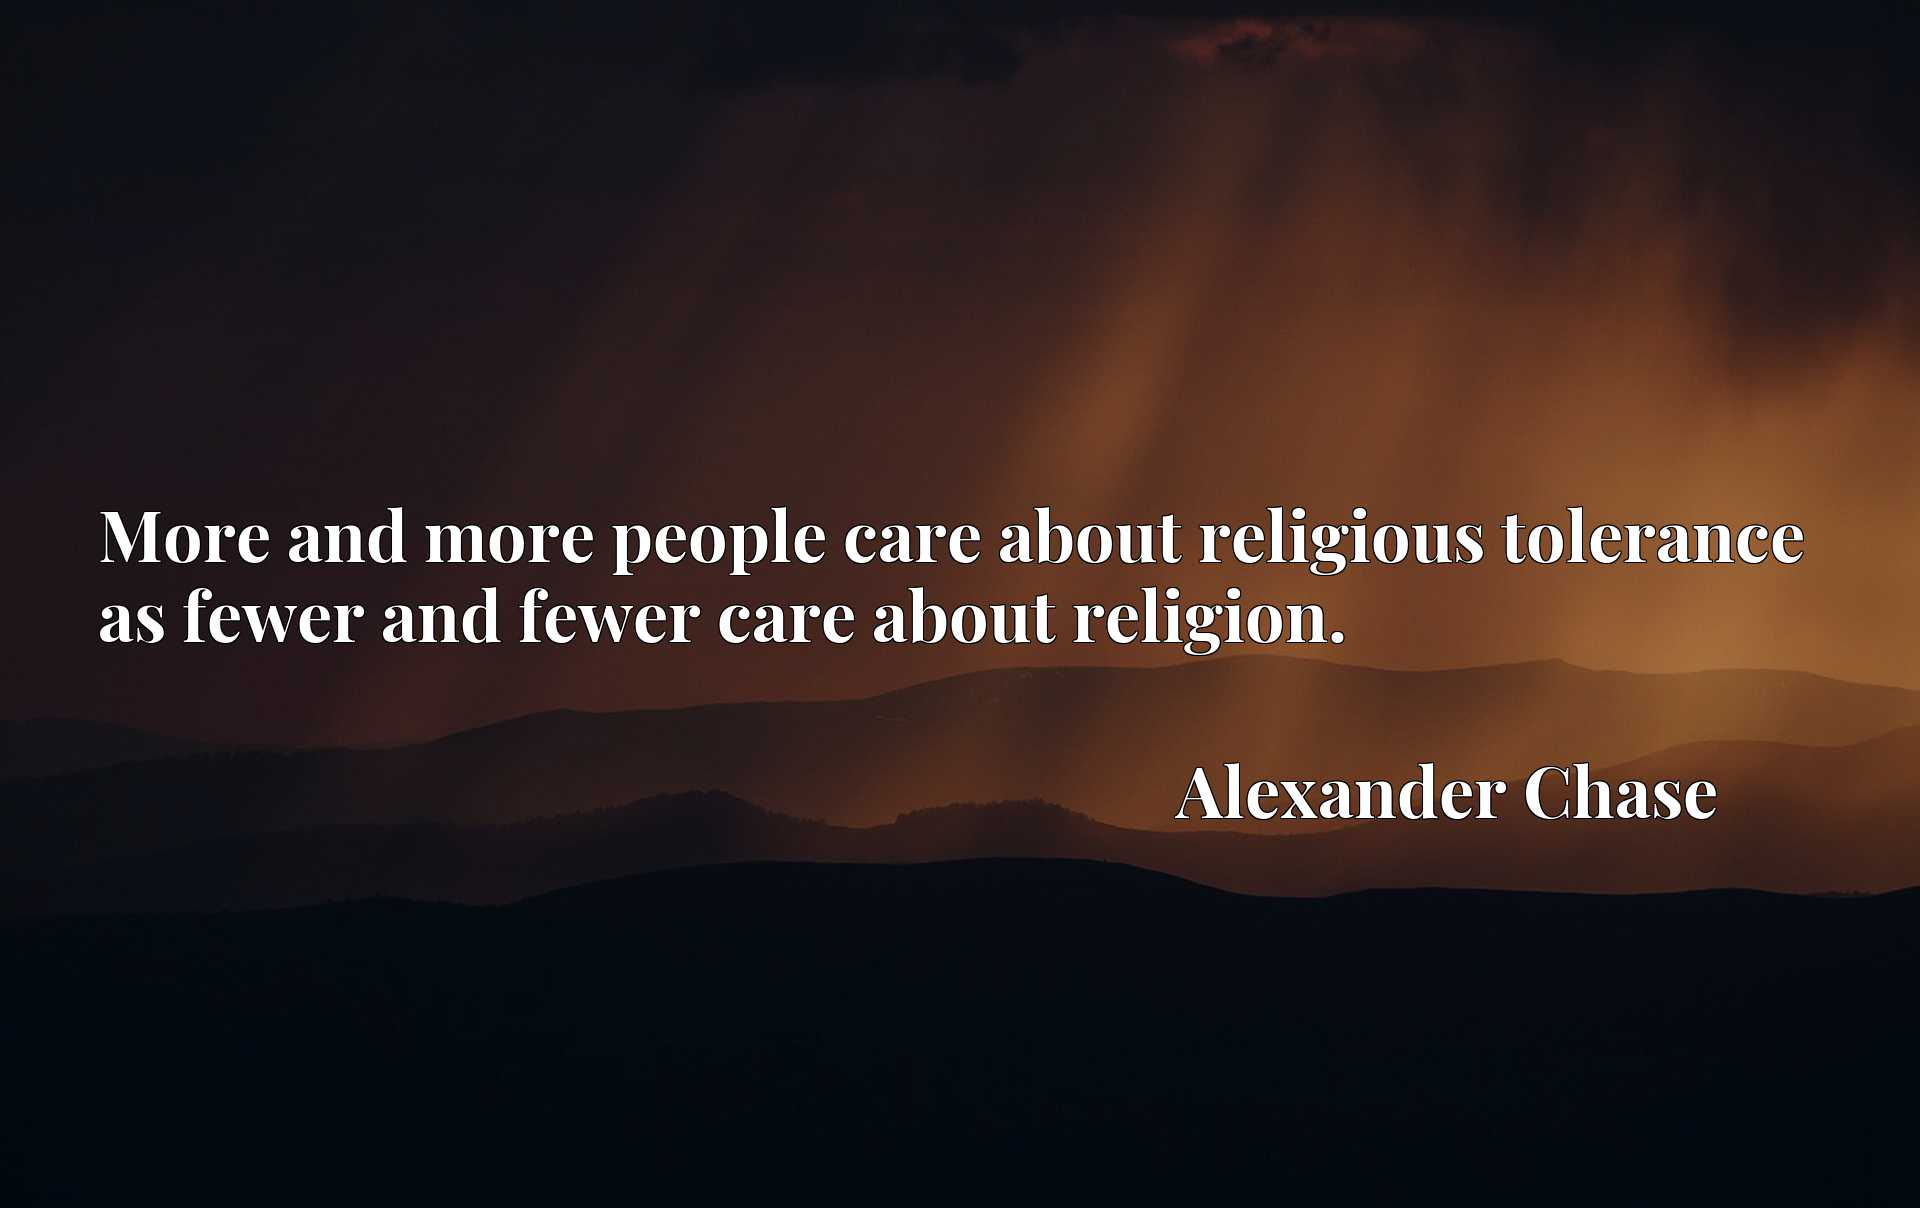 More and more people care about religious tolerance as fewer and fewer care about religion.